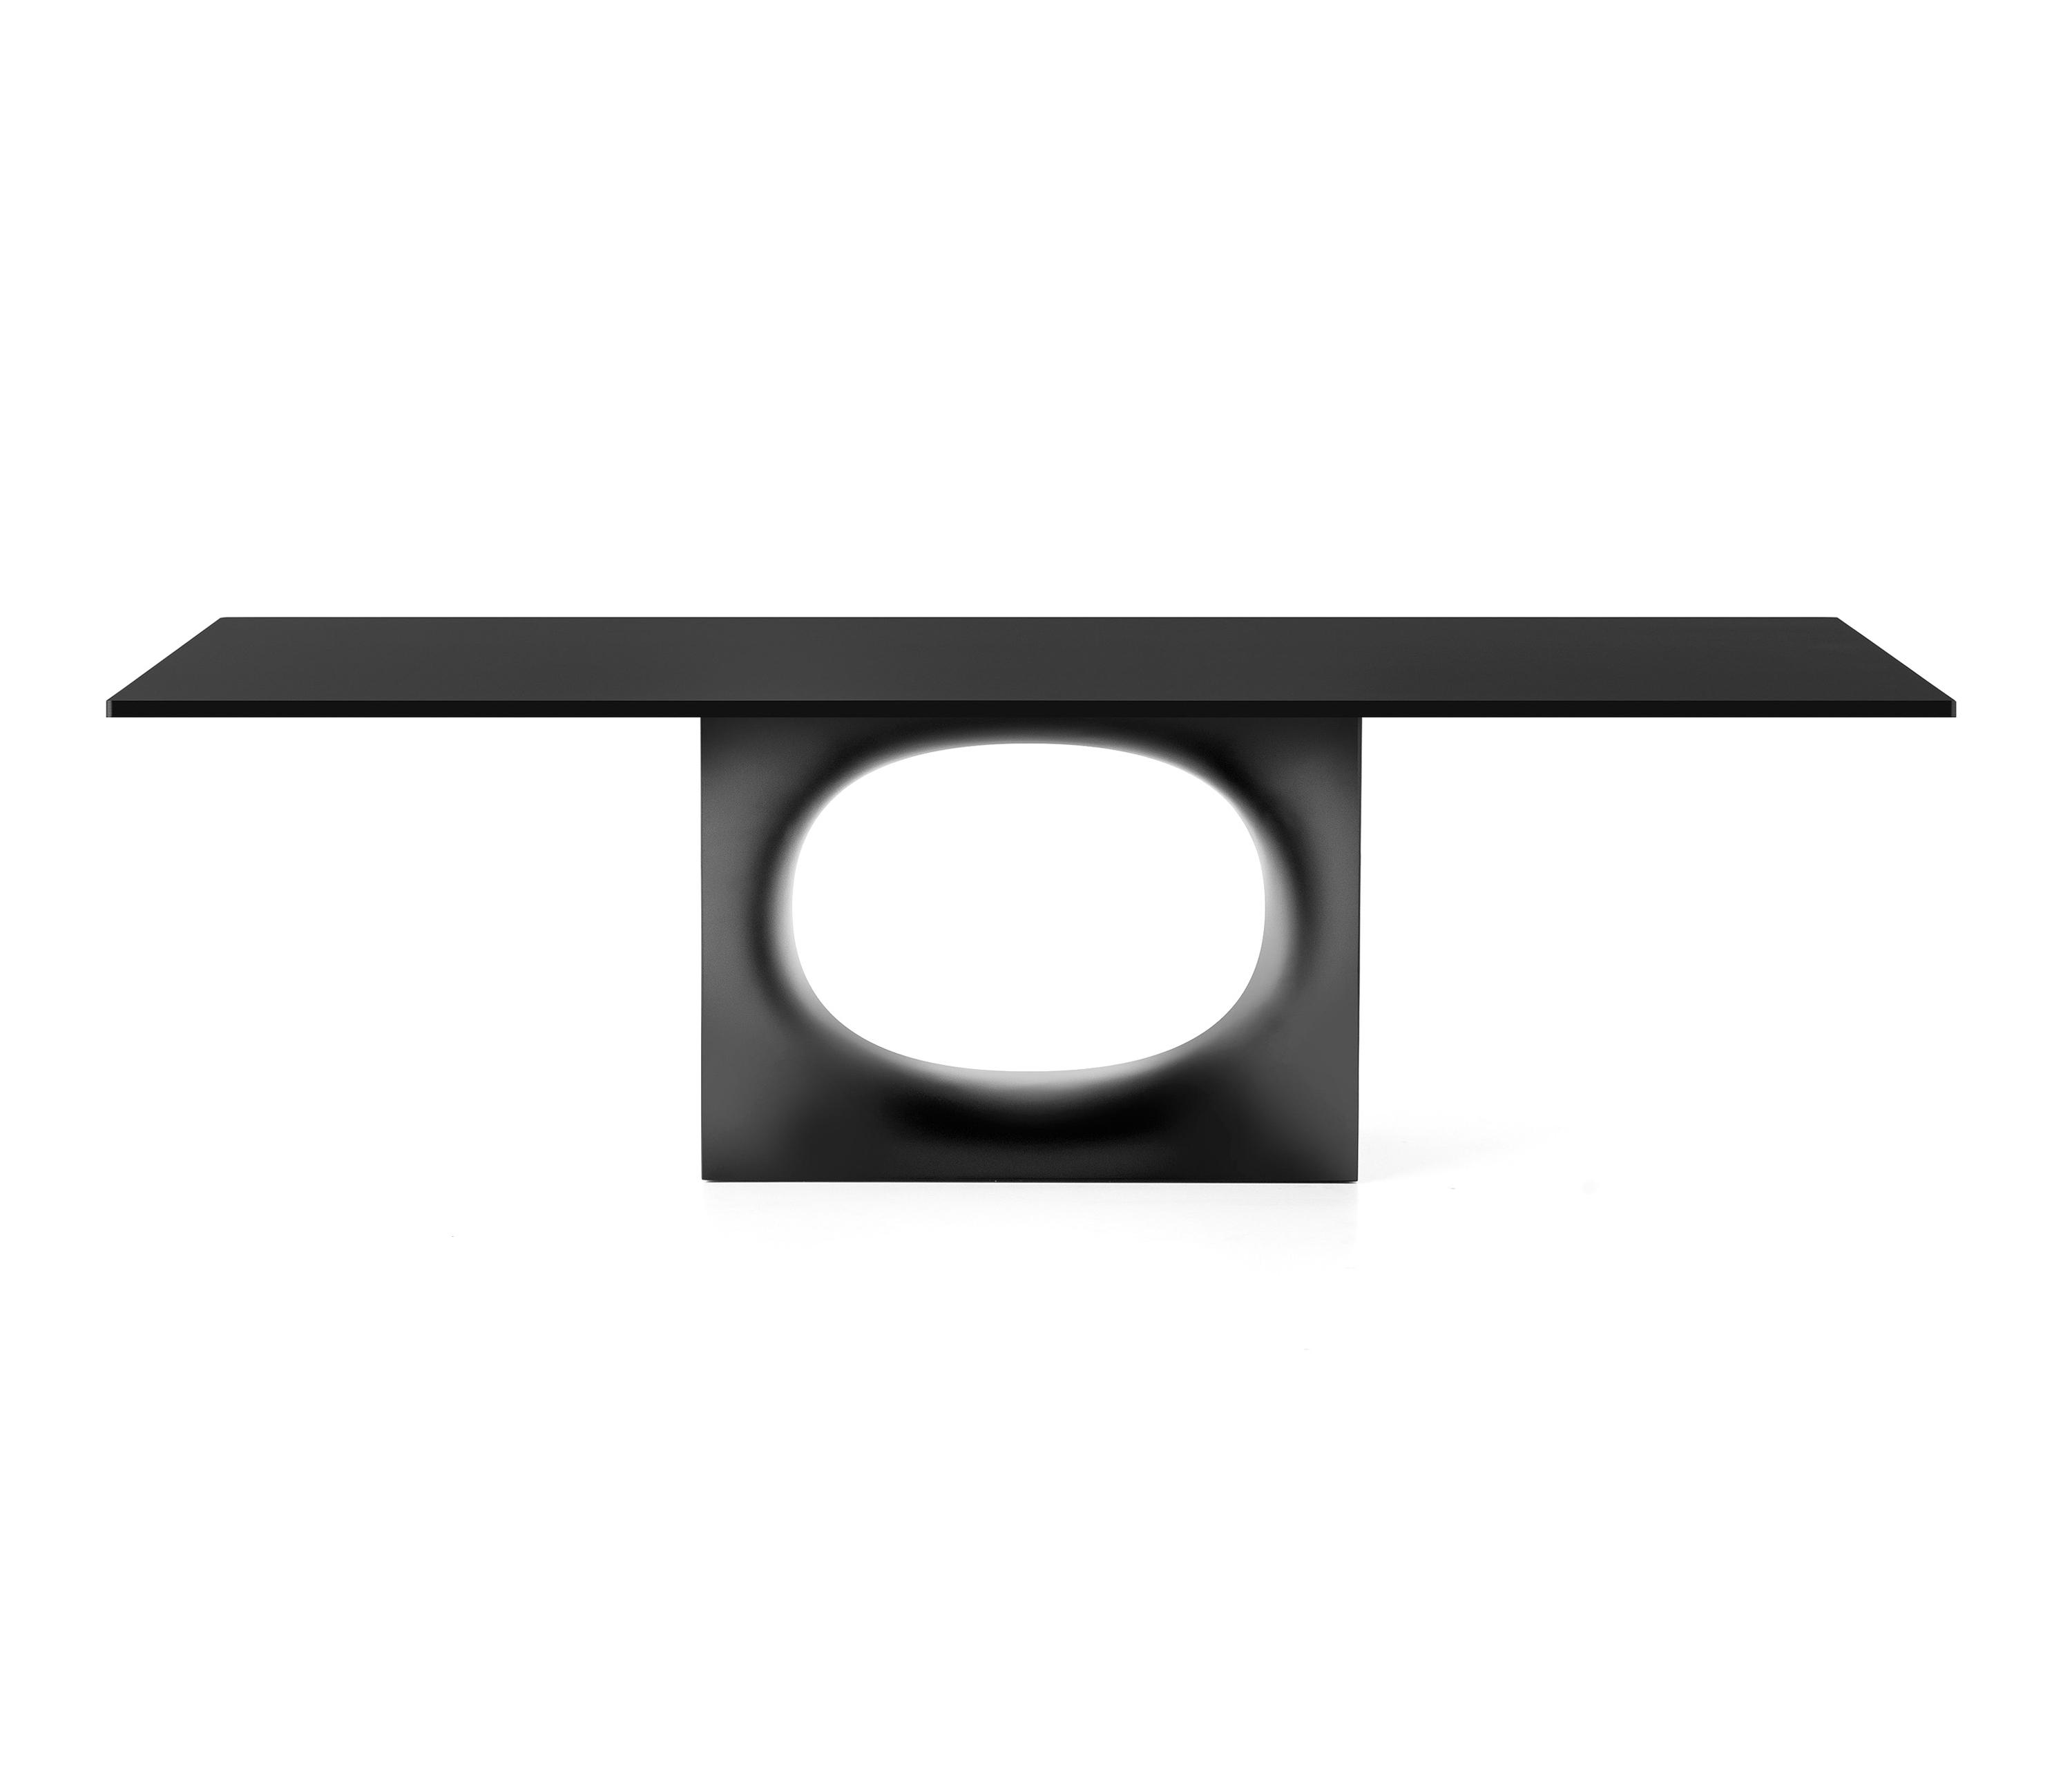 Holo table restaurant tables from kristalia architonic for Table kristalia